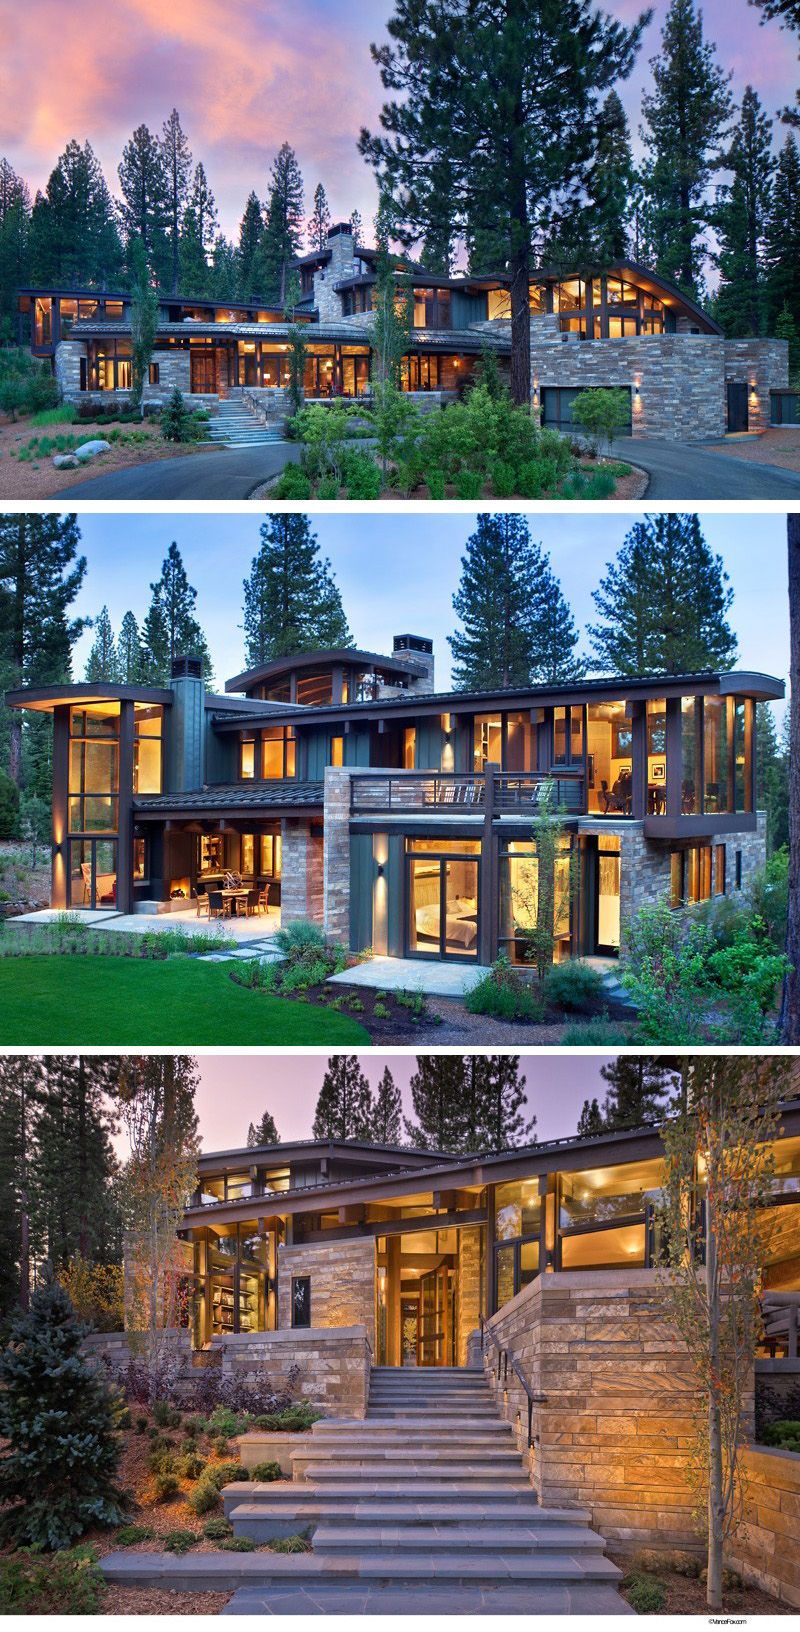 "RKD Architects have sent us photos of the ""Valhalla Residence"" they designed, located in the Sierra Mountains, near Truckee, California."